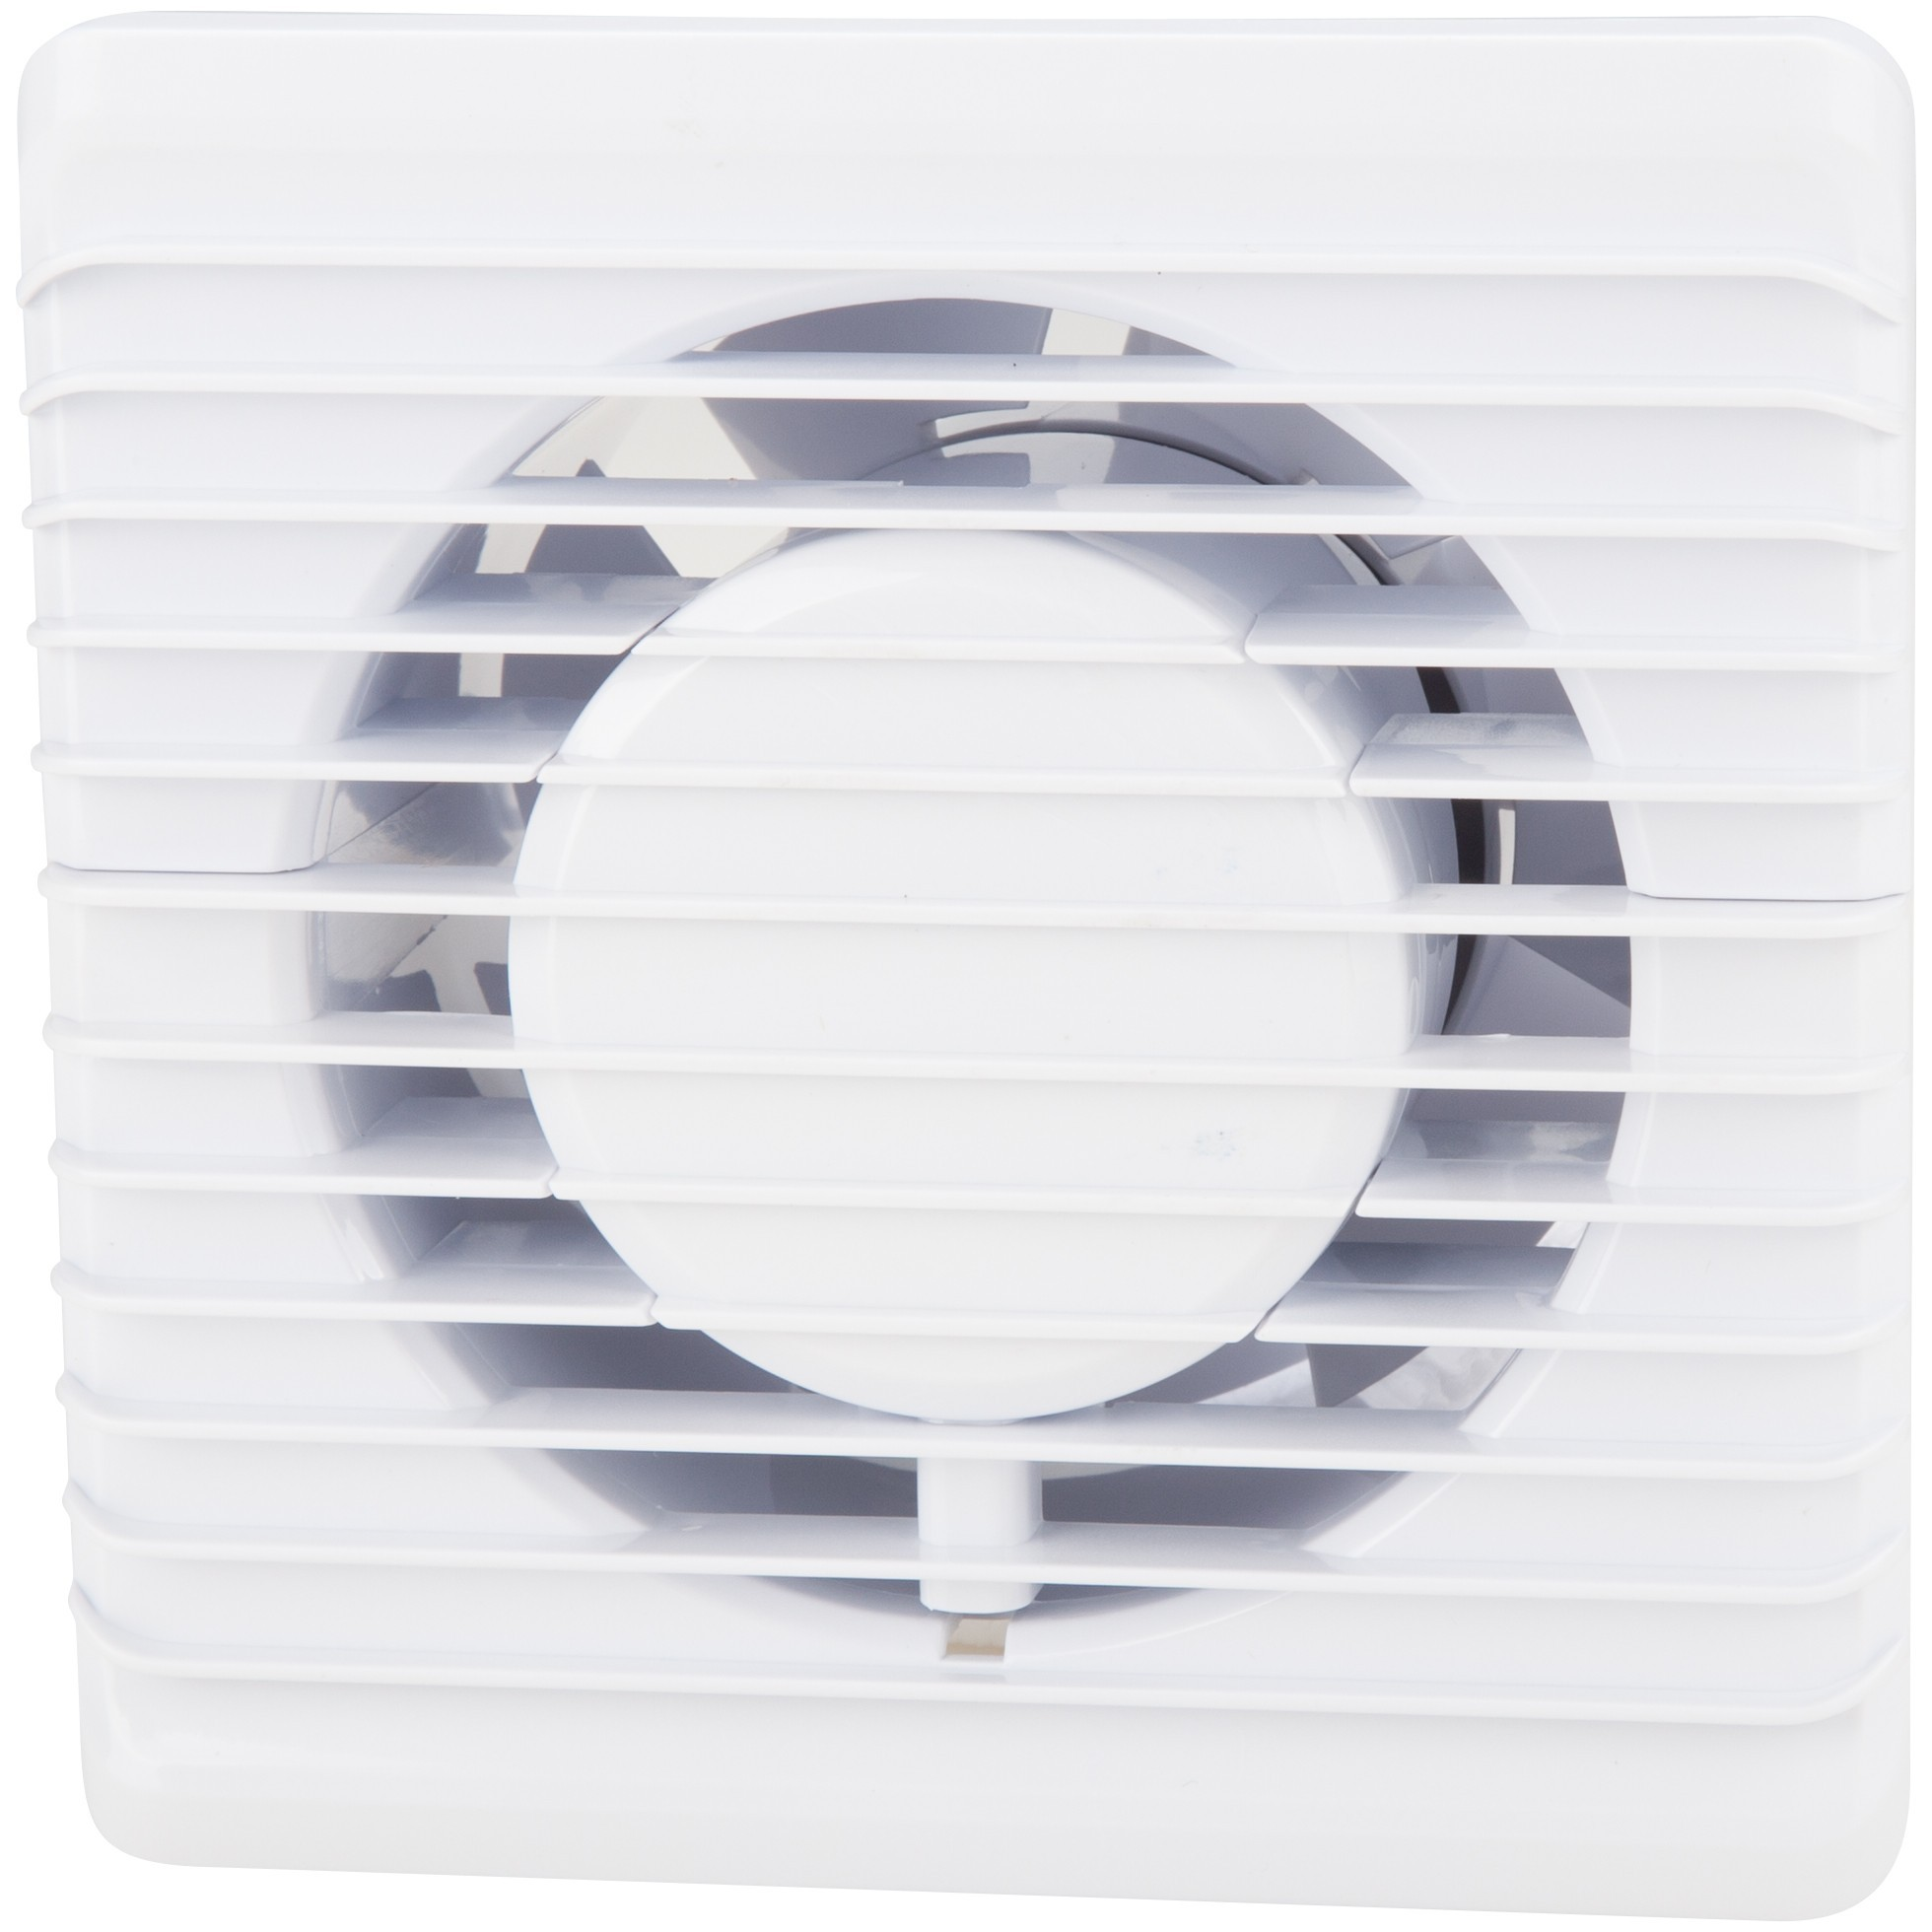 Ventilator baie Evosanitary 125, 10W, 160x160mm, diametru evacuare 125mm, debit aer 140mc/h imagine techstar.ro 2021